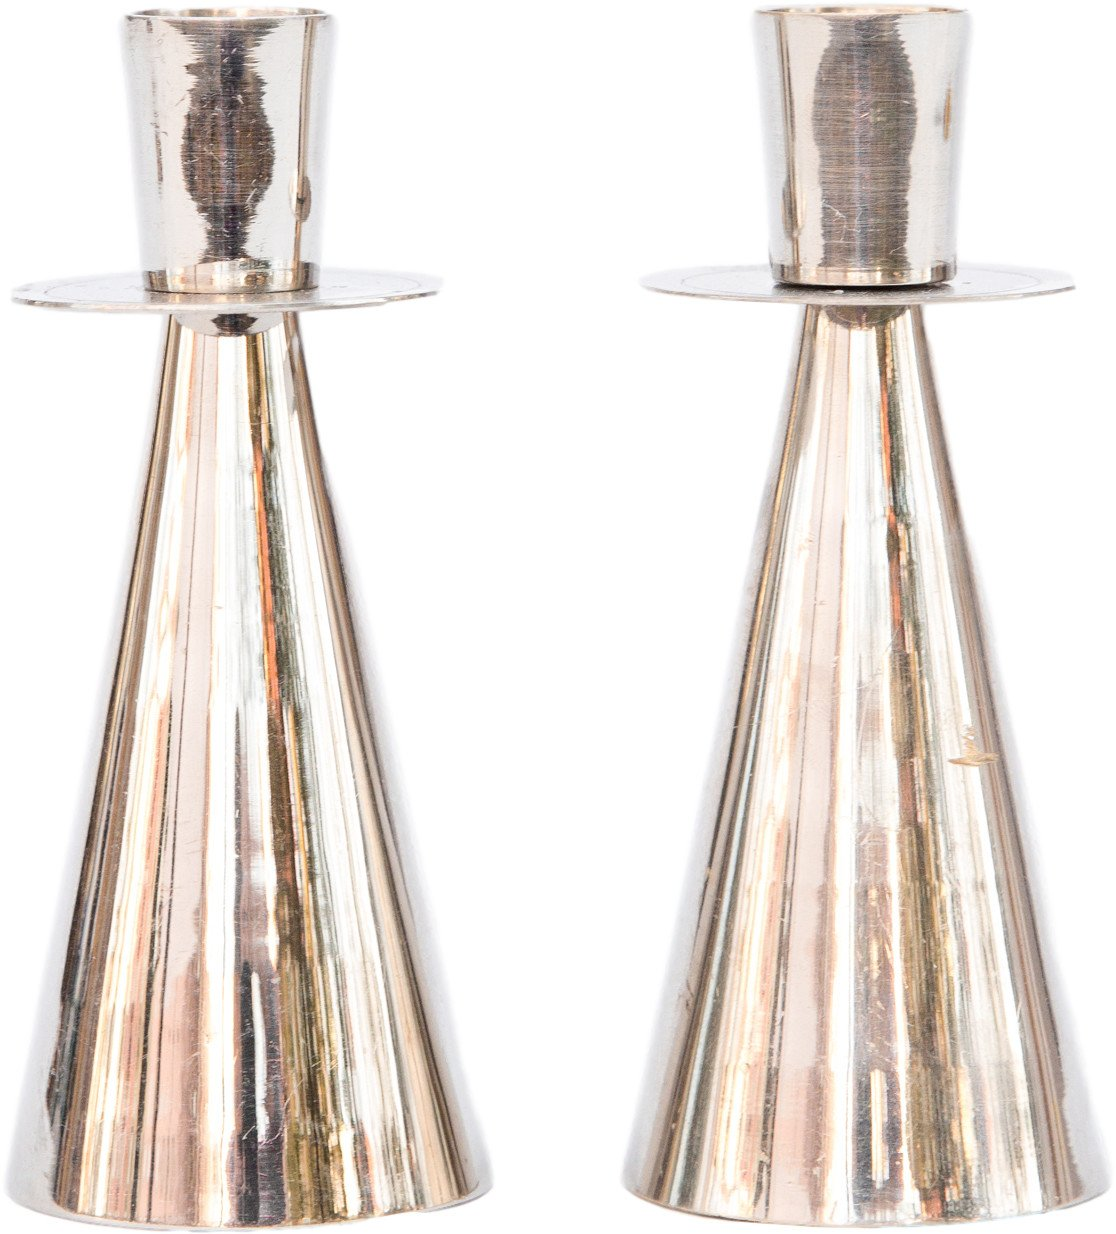 Pair of Candleholders, 1970s